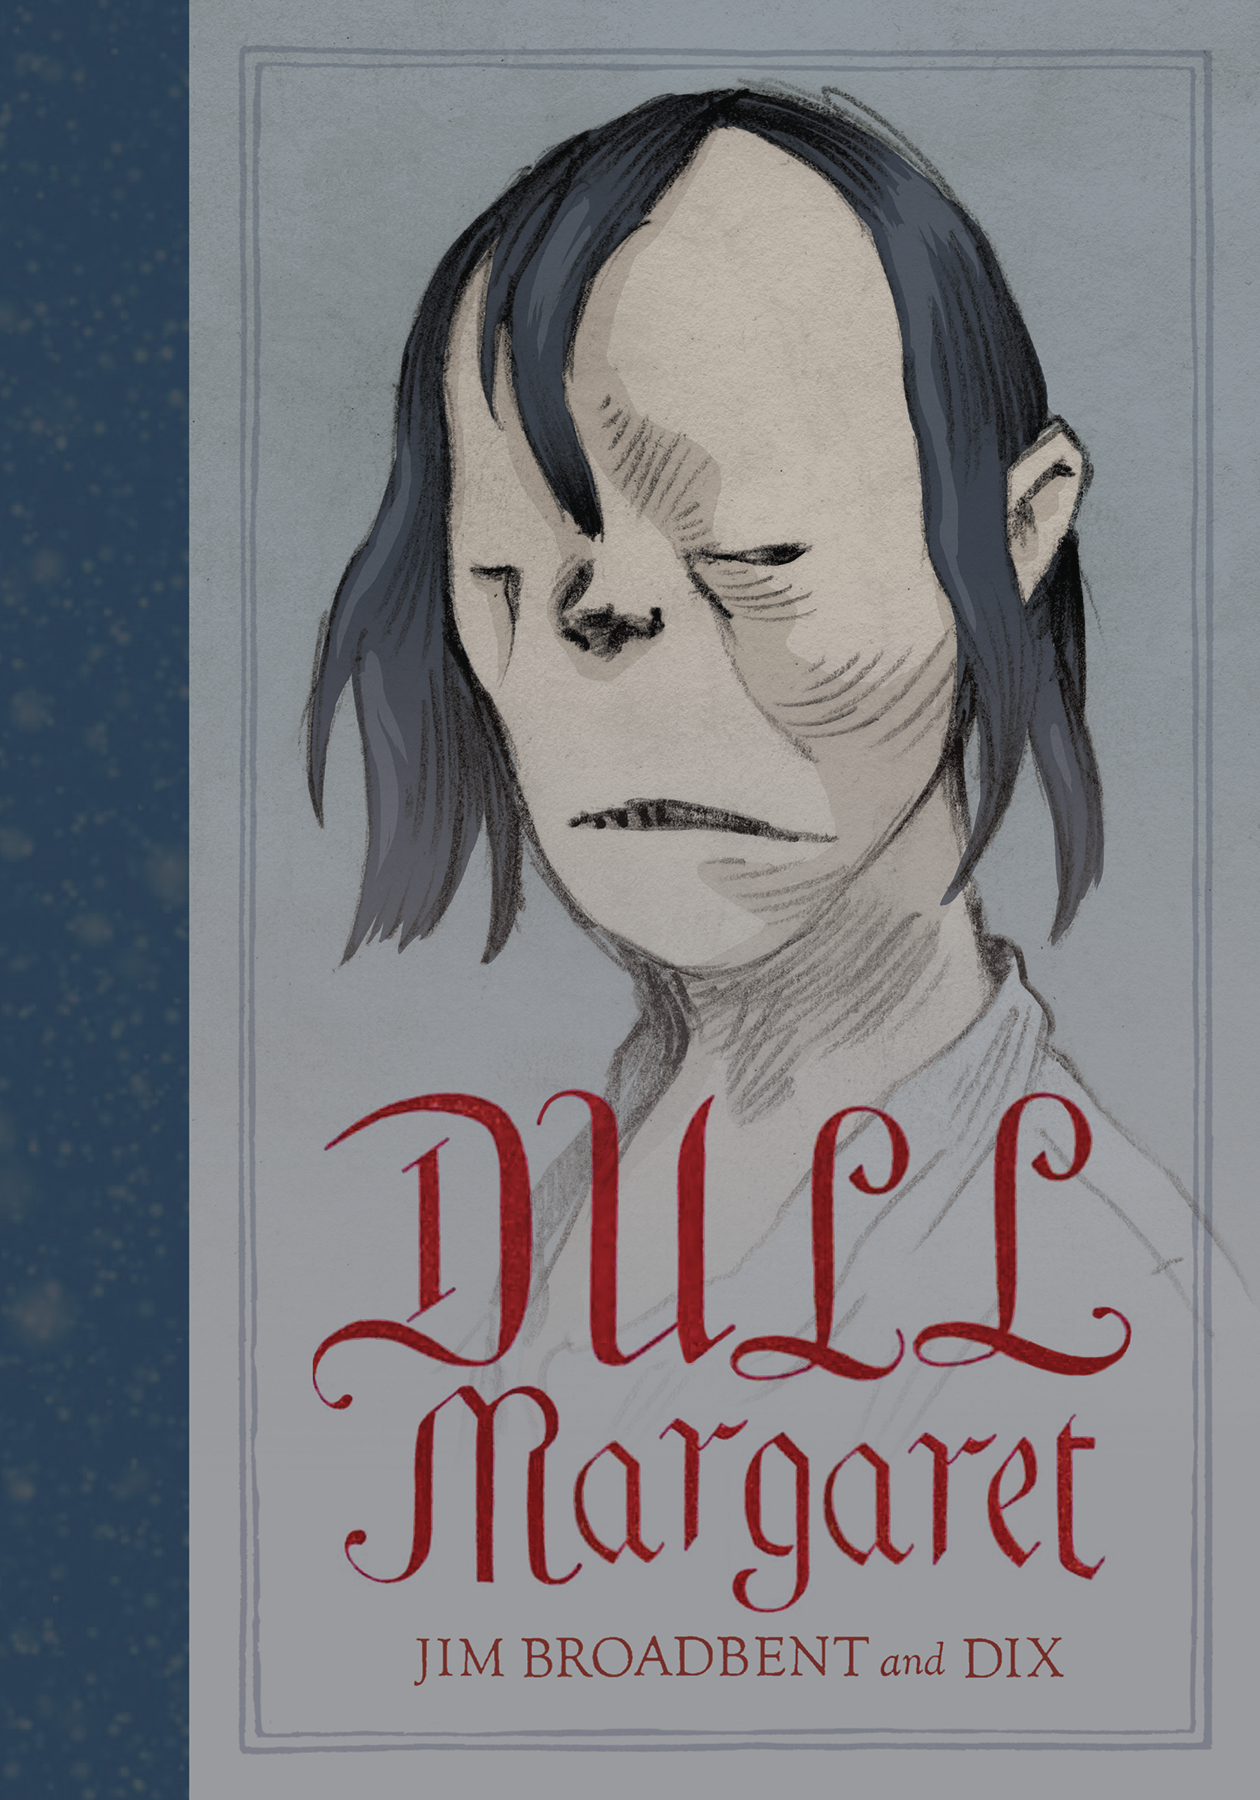 'Dull Margaret' review: jerky people in a jerk world make for powerful, telling art